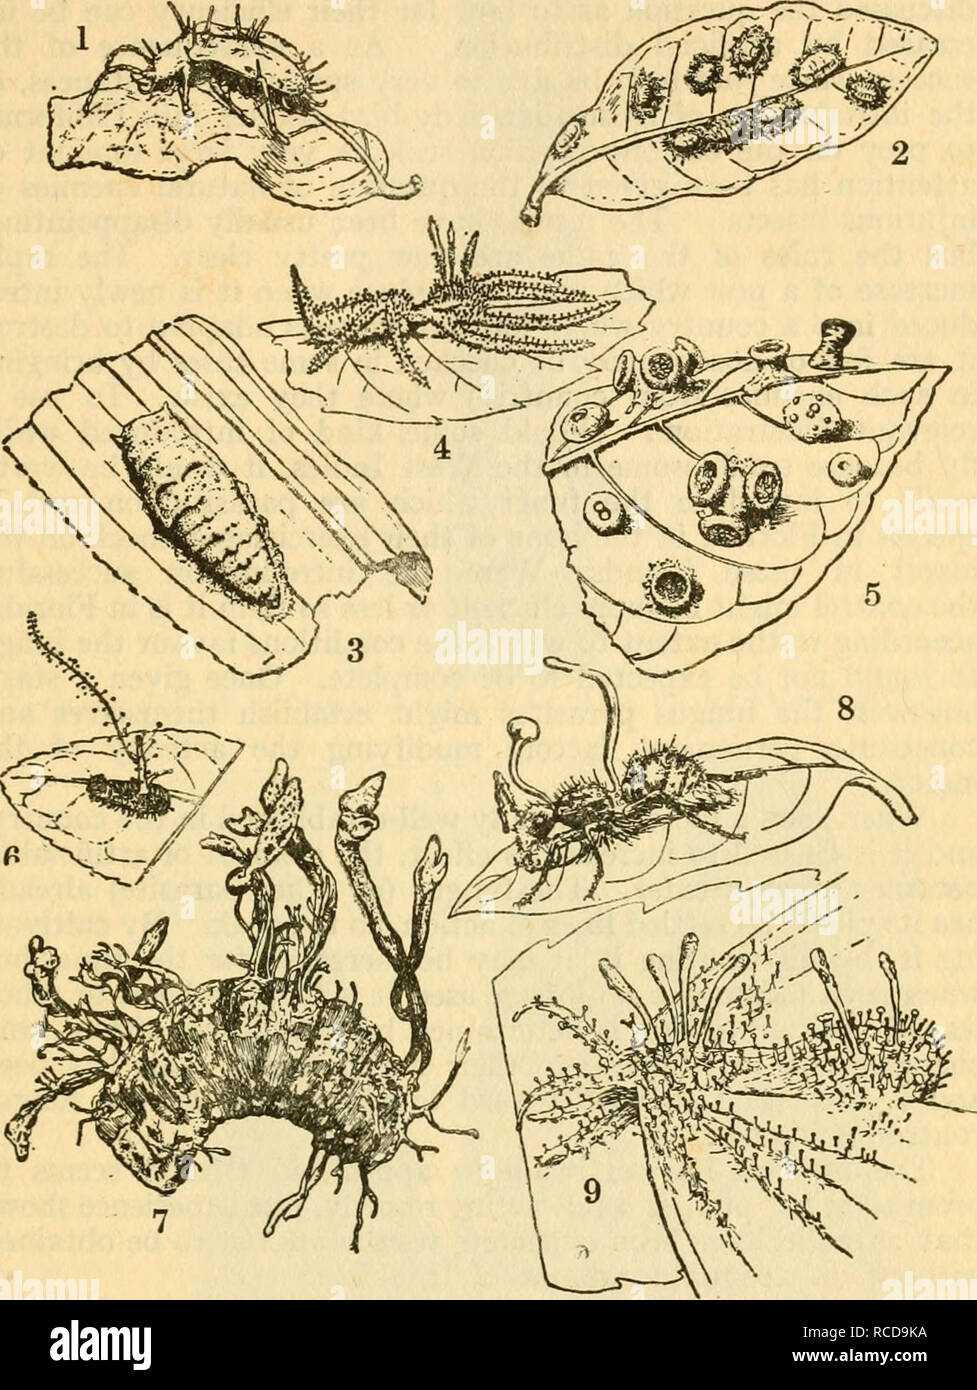 . Diseases of crop-plants in the Lesser Antilles. Tropical plants; Plant diseases. ENTOMOGENOUS FUNGI 75. Fig. 19 ENTOMOGENOUS FuNGI 1 HiRsuTELLA ENTOMOPHiLA on a beetle (Colaspis sp.). 2 Cephalosporium Lecanii on Coccus sp. 3 Metarrhizium Anisopliae on a Homopteron, probably a Jassid. 4 Gibellula arachnophila on a spider. 5 Aschersonia turbinata on a scale insect. 6 Gibellula sp. 7 CoRDYCEPS sp. on larva of Rhinoceros Beetle (Strategus). 8 Cordyceps Lloydii on an ant (Campanotus sp.). 9 IsARiA Sphingum ou a moth.. Please note that these images are extracted from scanned page images that may h - Stock Image